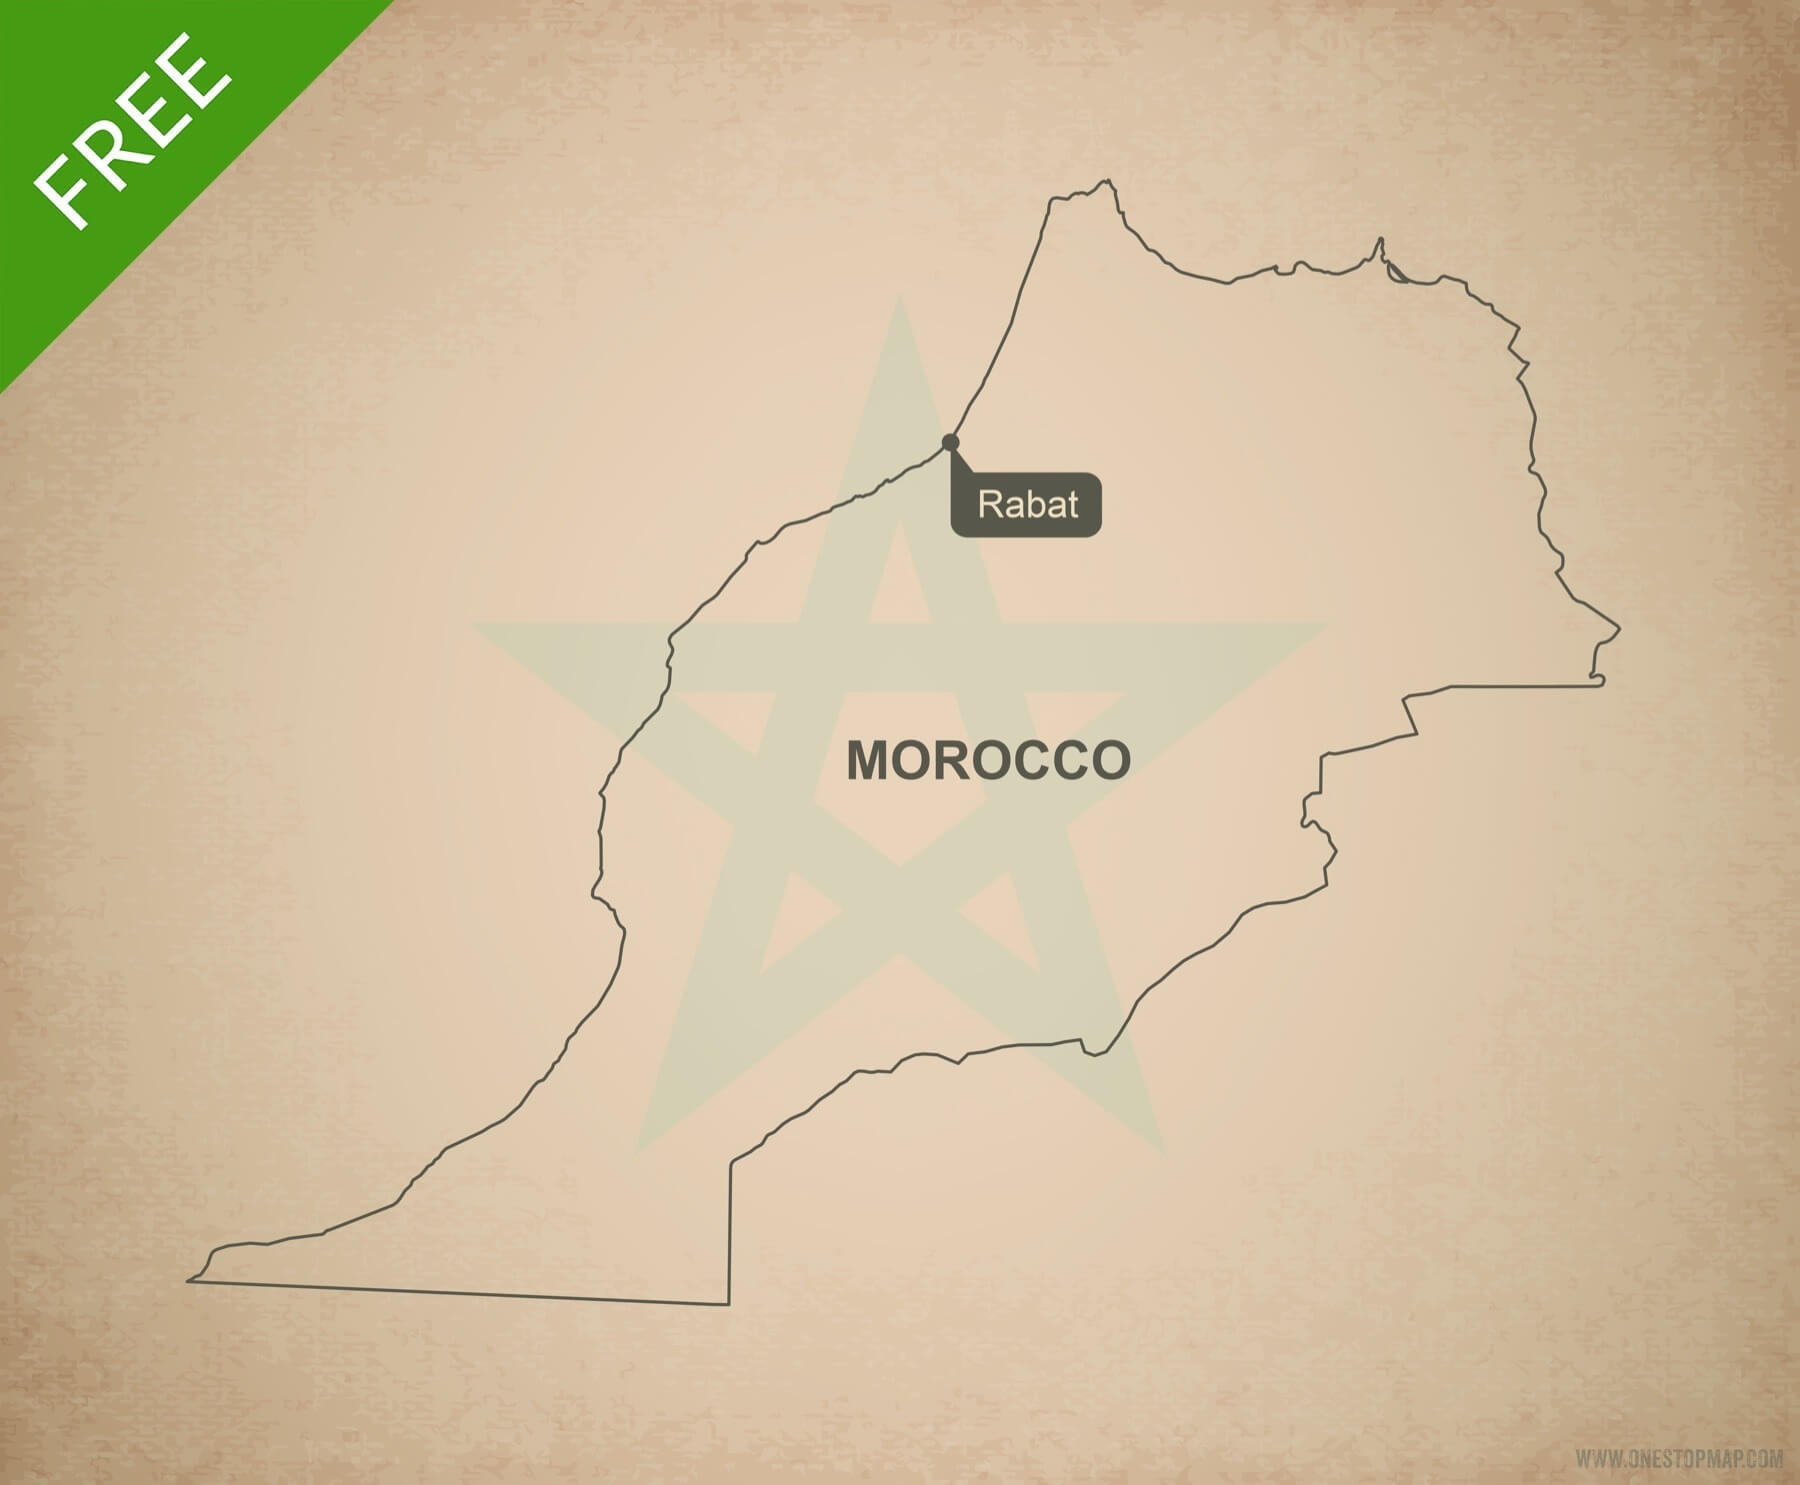 Free vector map of Morocco outline